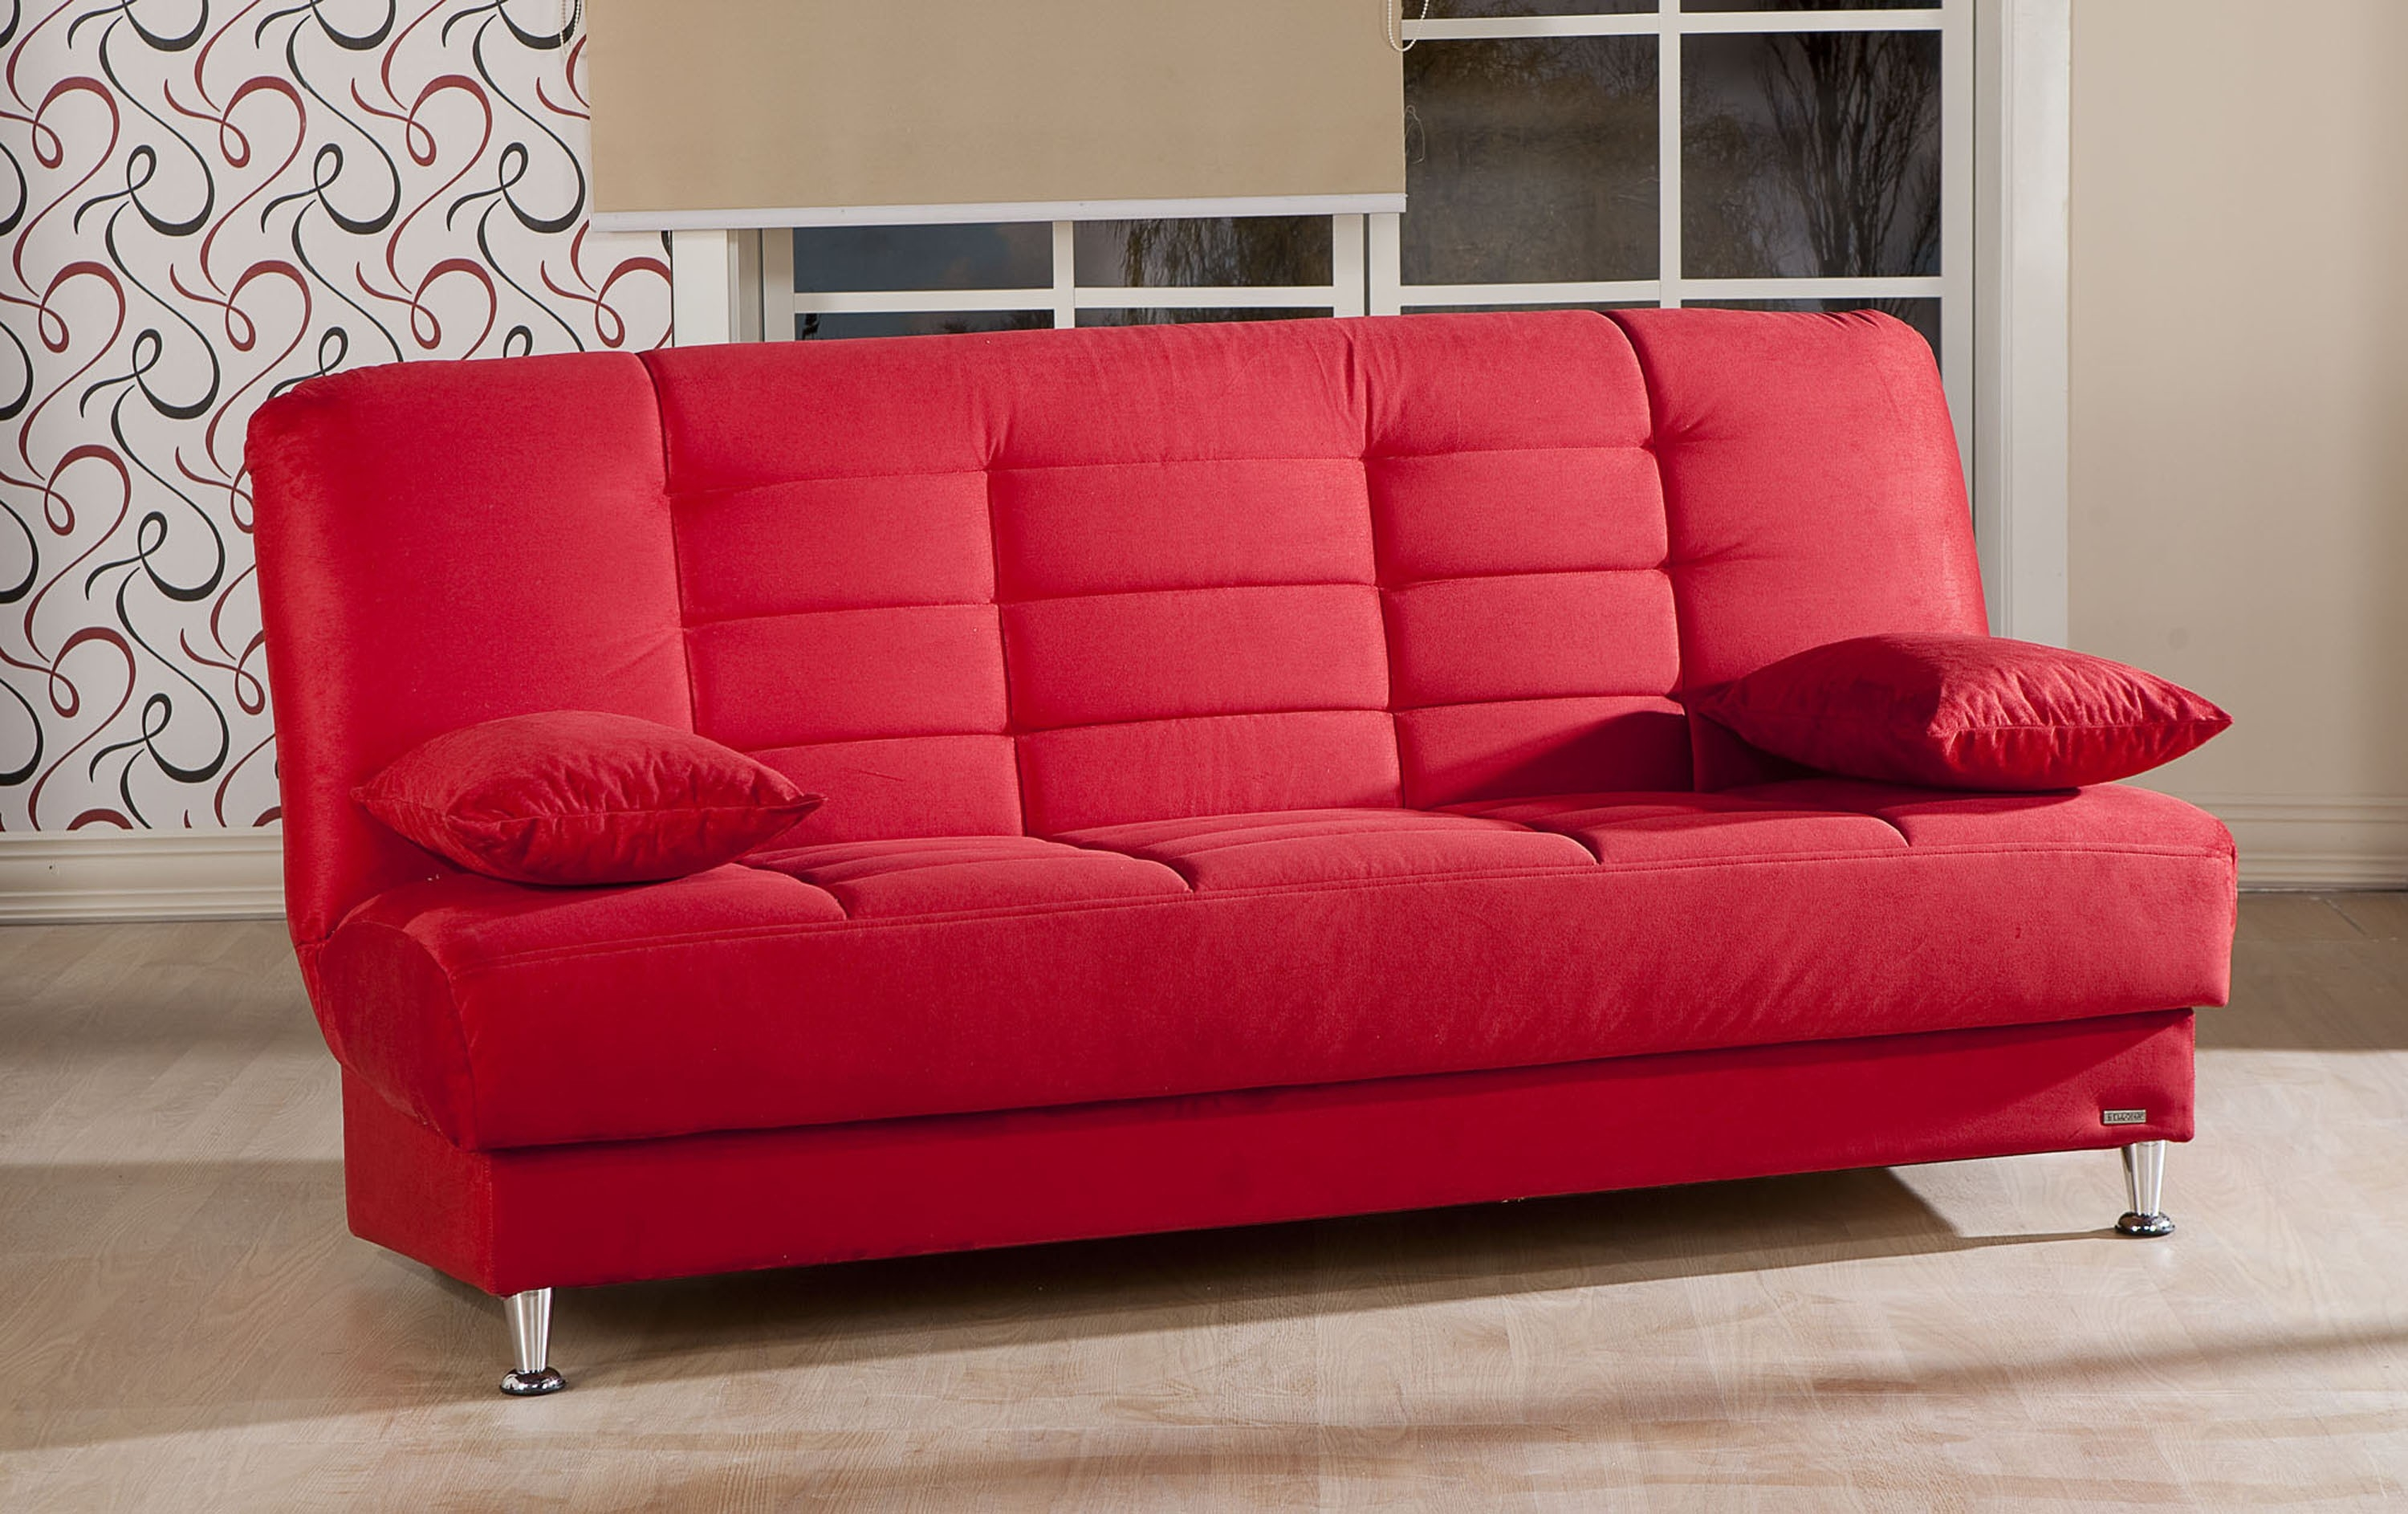 Sofas Luxury Your Living Room Sofas Design With Red Sectional With Regard To Red Sofa Chairs (Image 15 of 15)